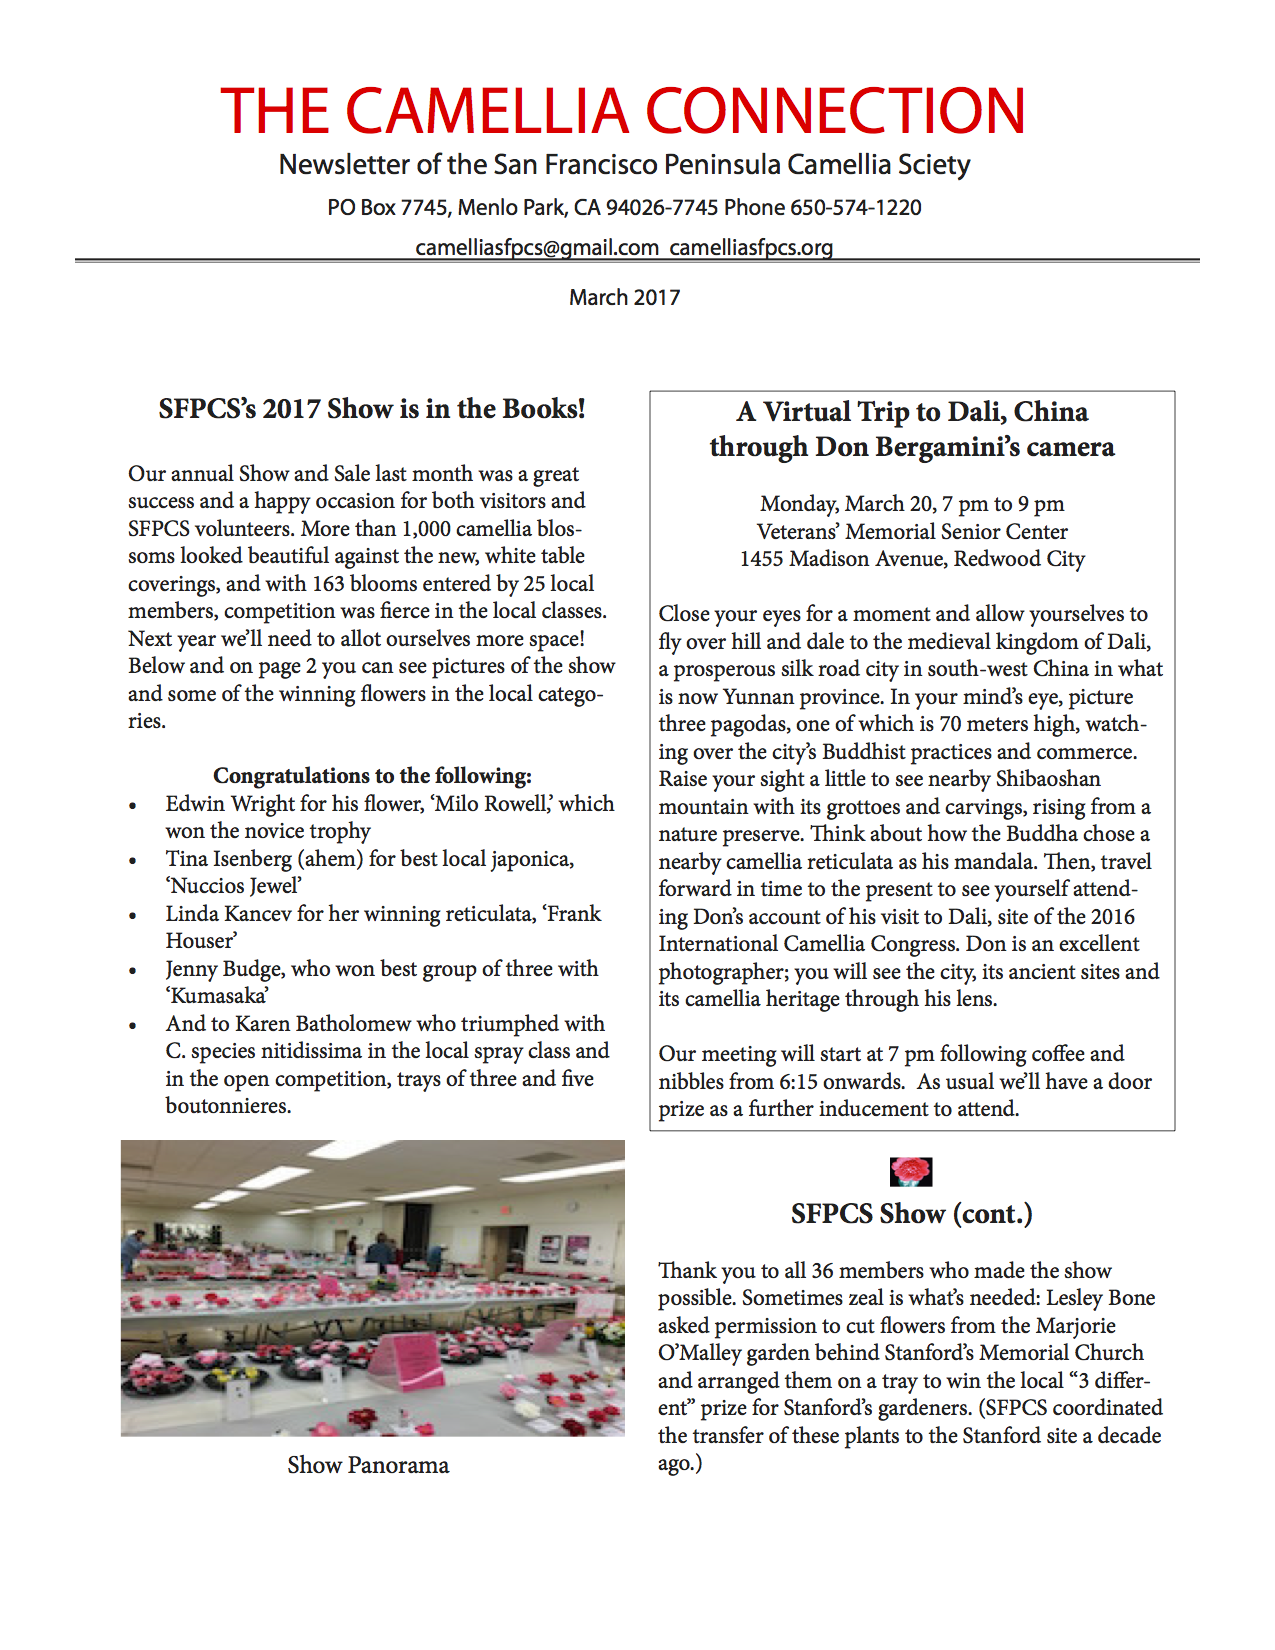 SFPCS March newsletter p1